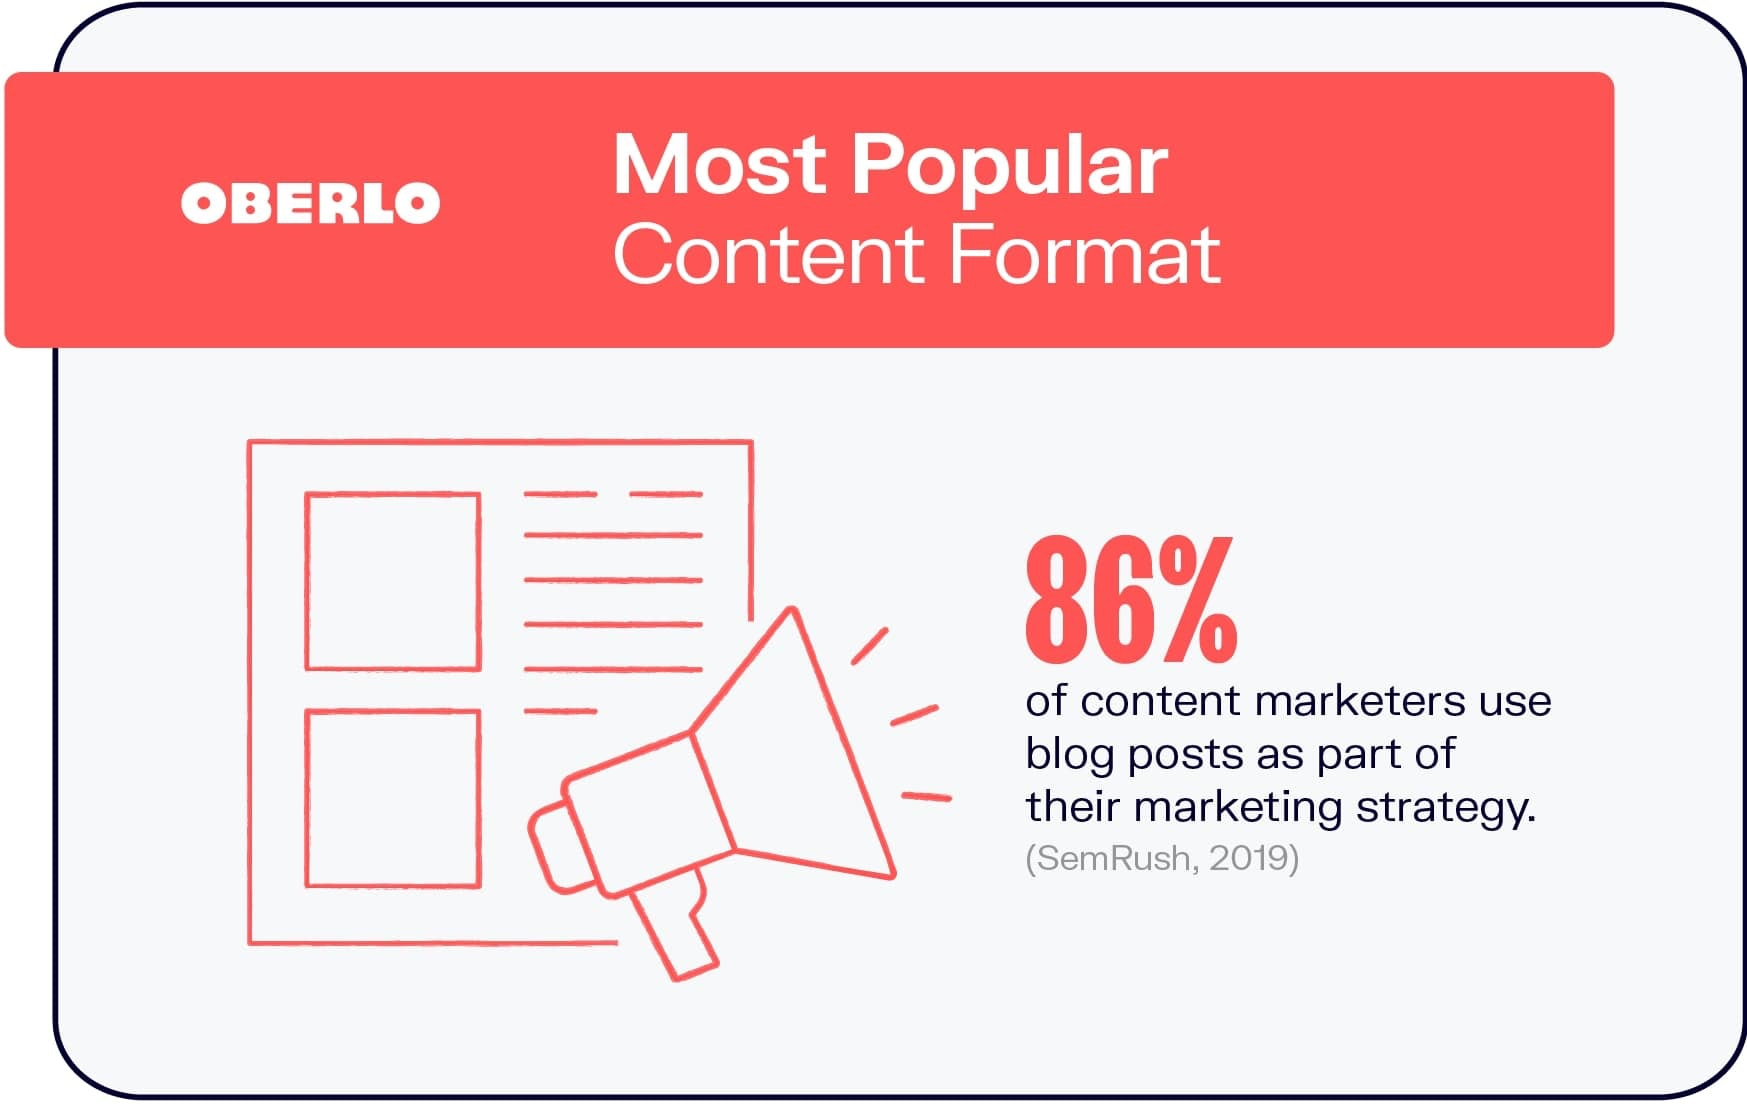 Most Popular Format Among Content Marketers